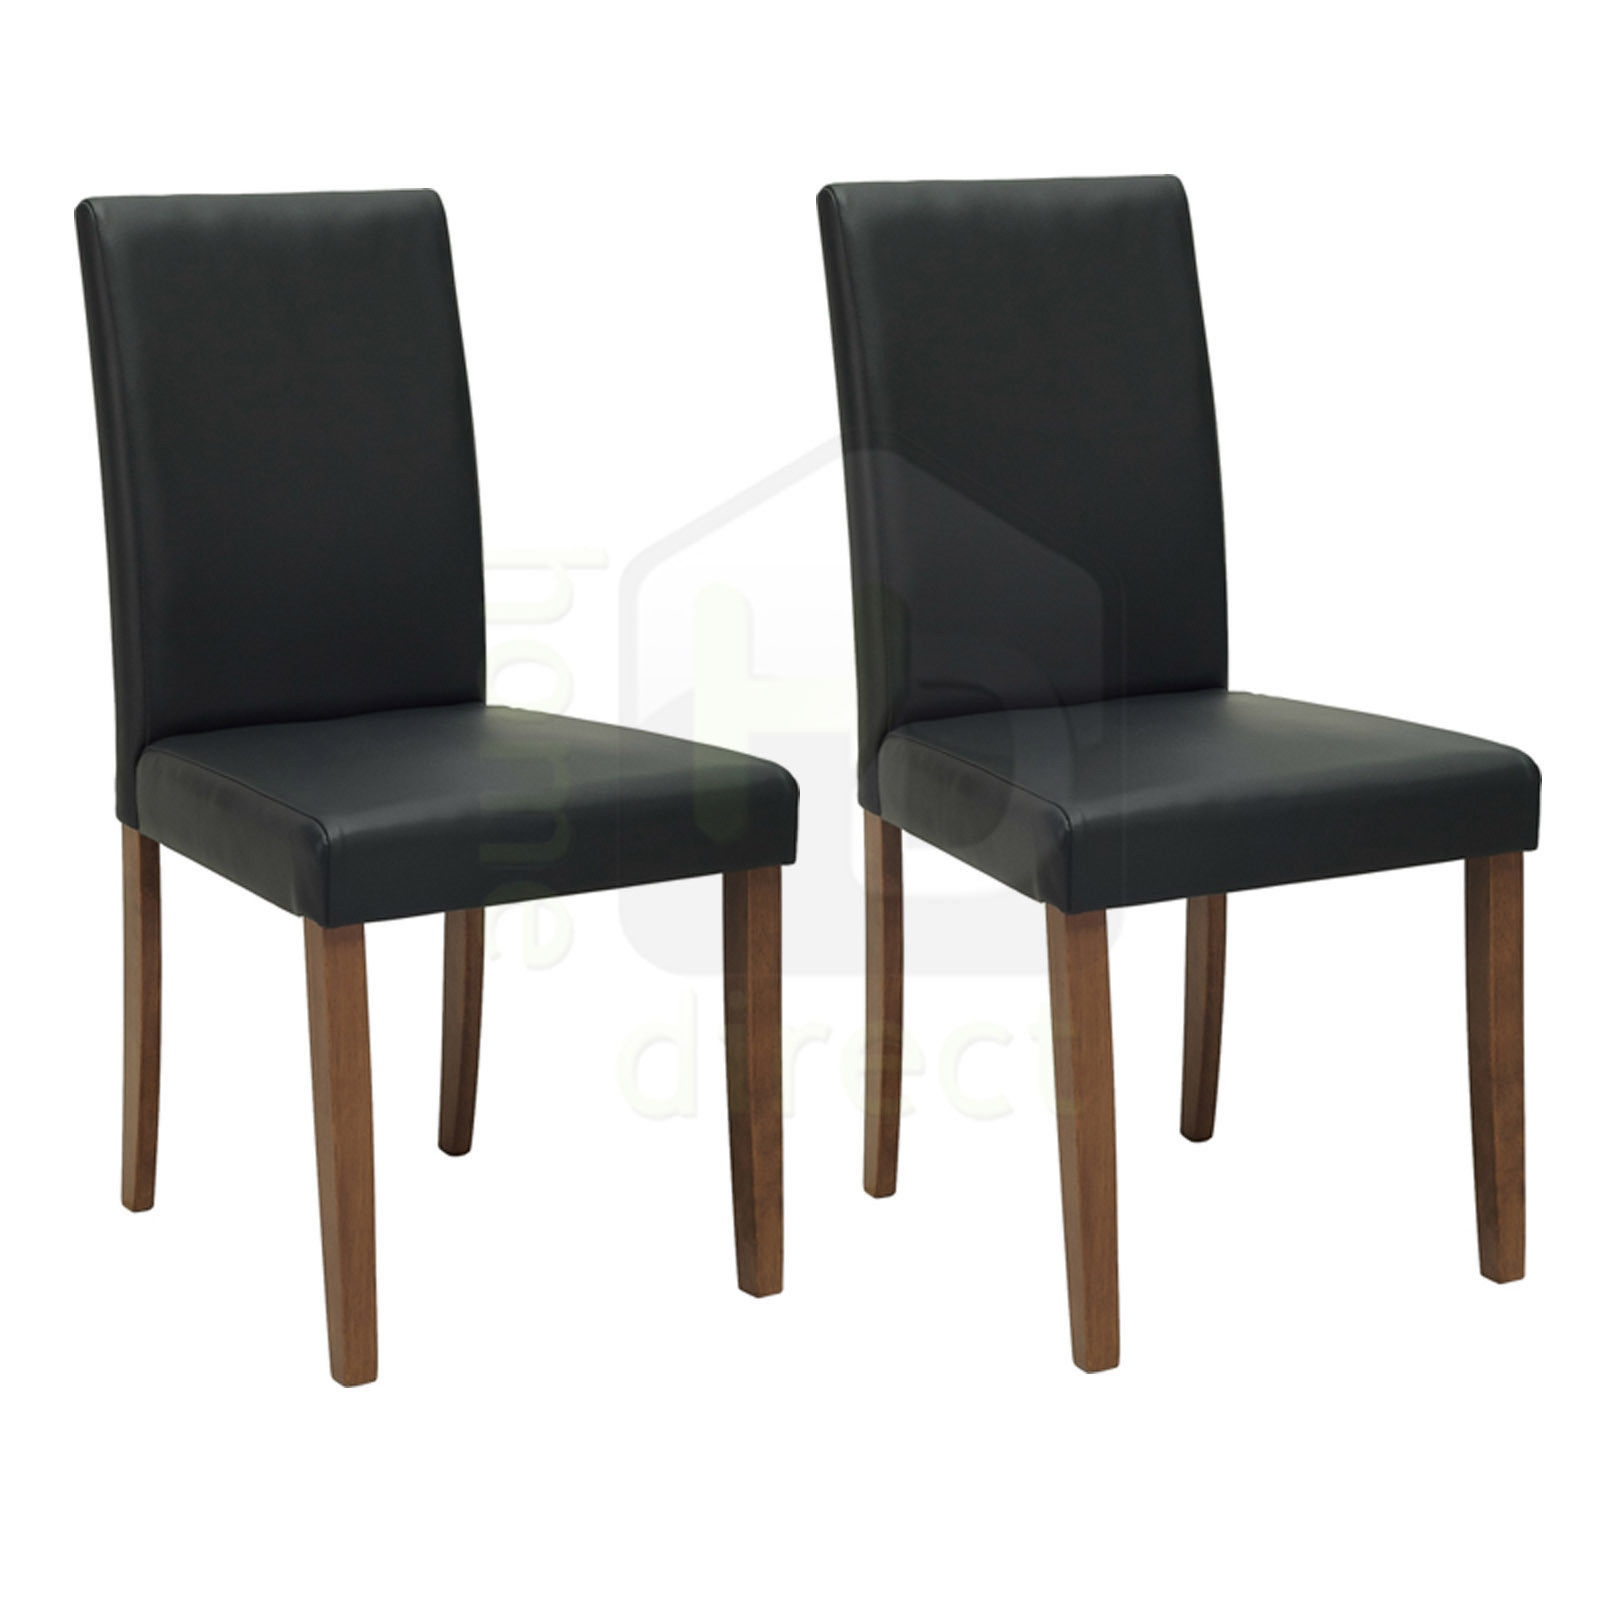 2x lenore modern danish fabric scandinavian retro lounge for Modern dining chairs australia